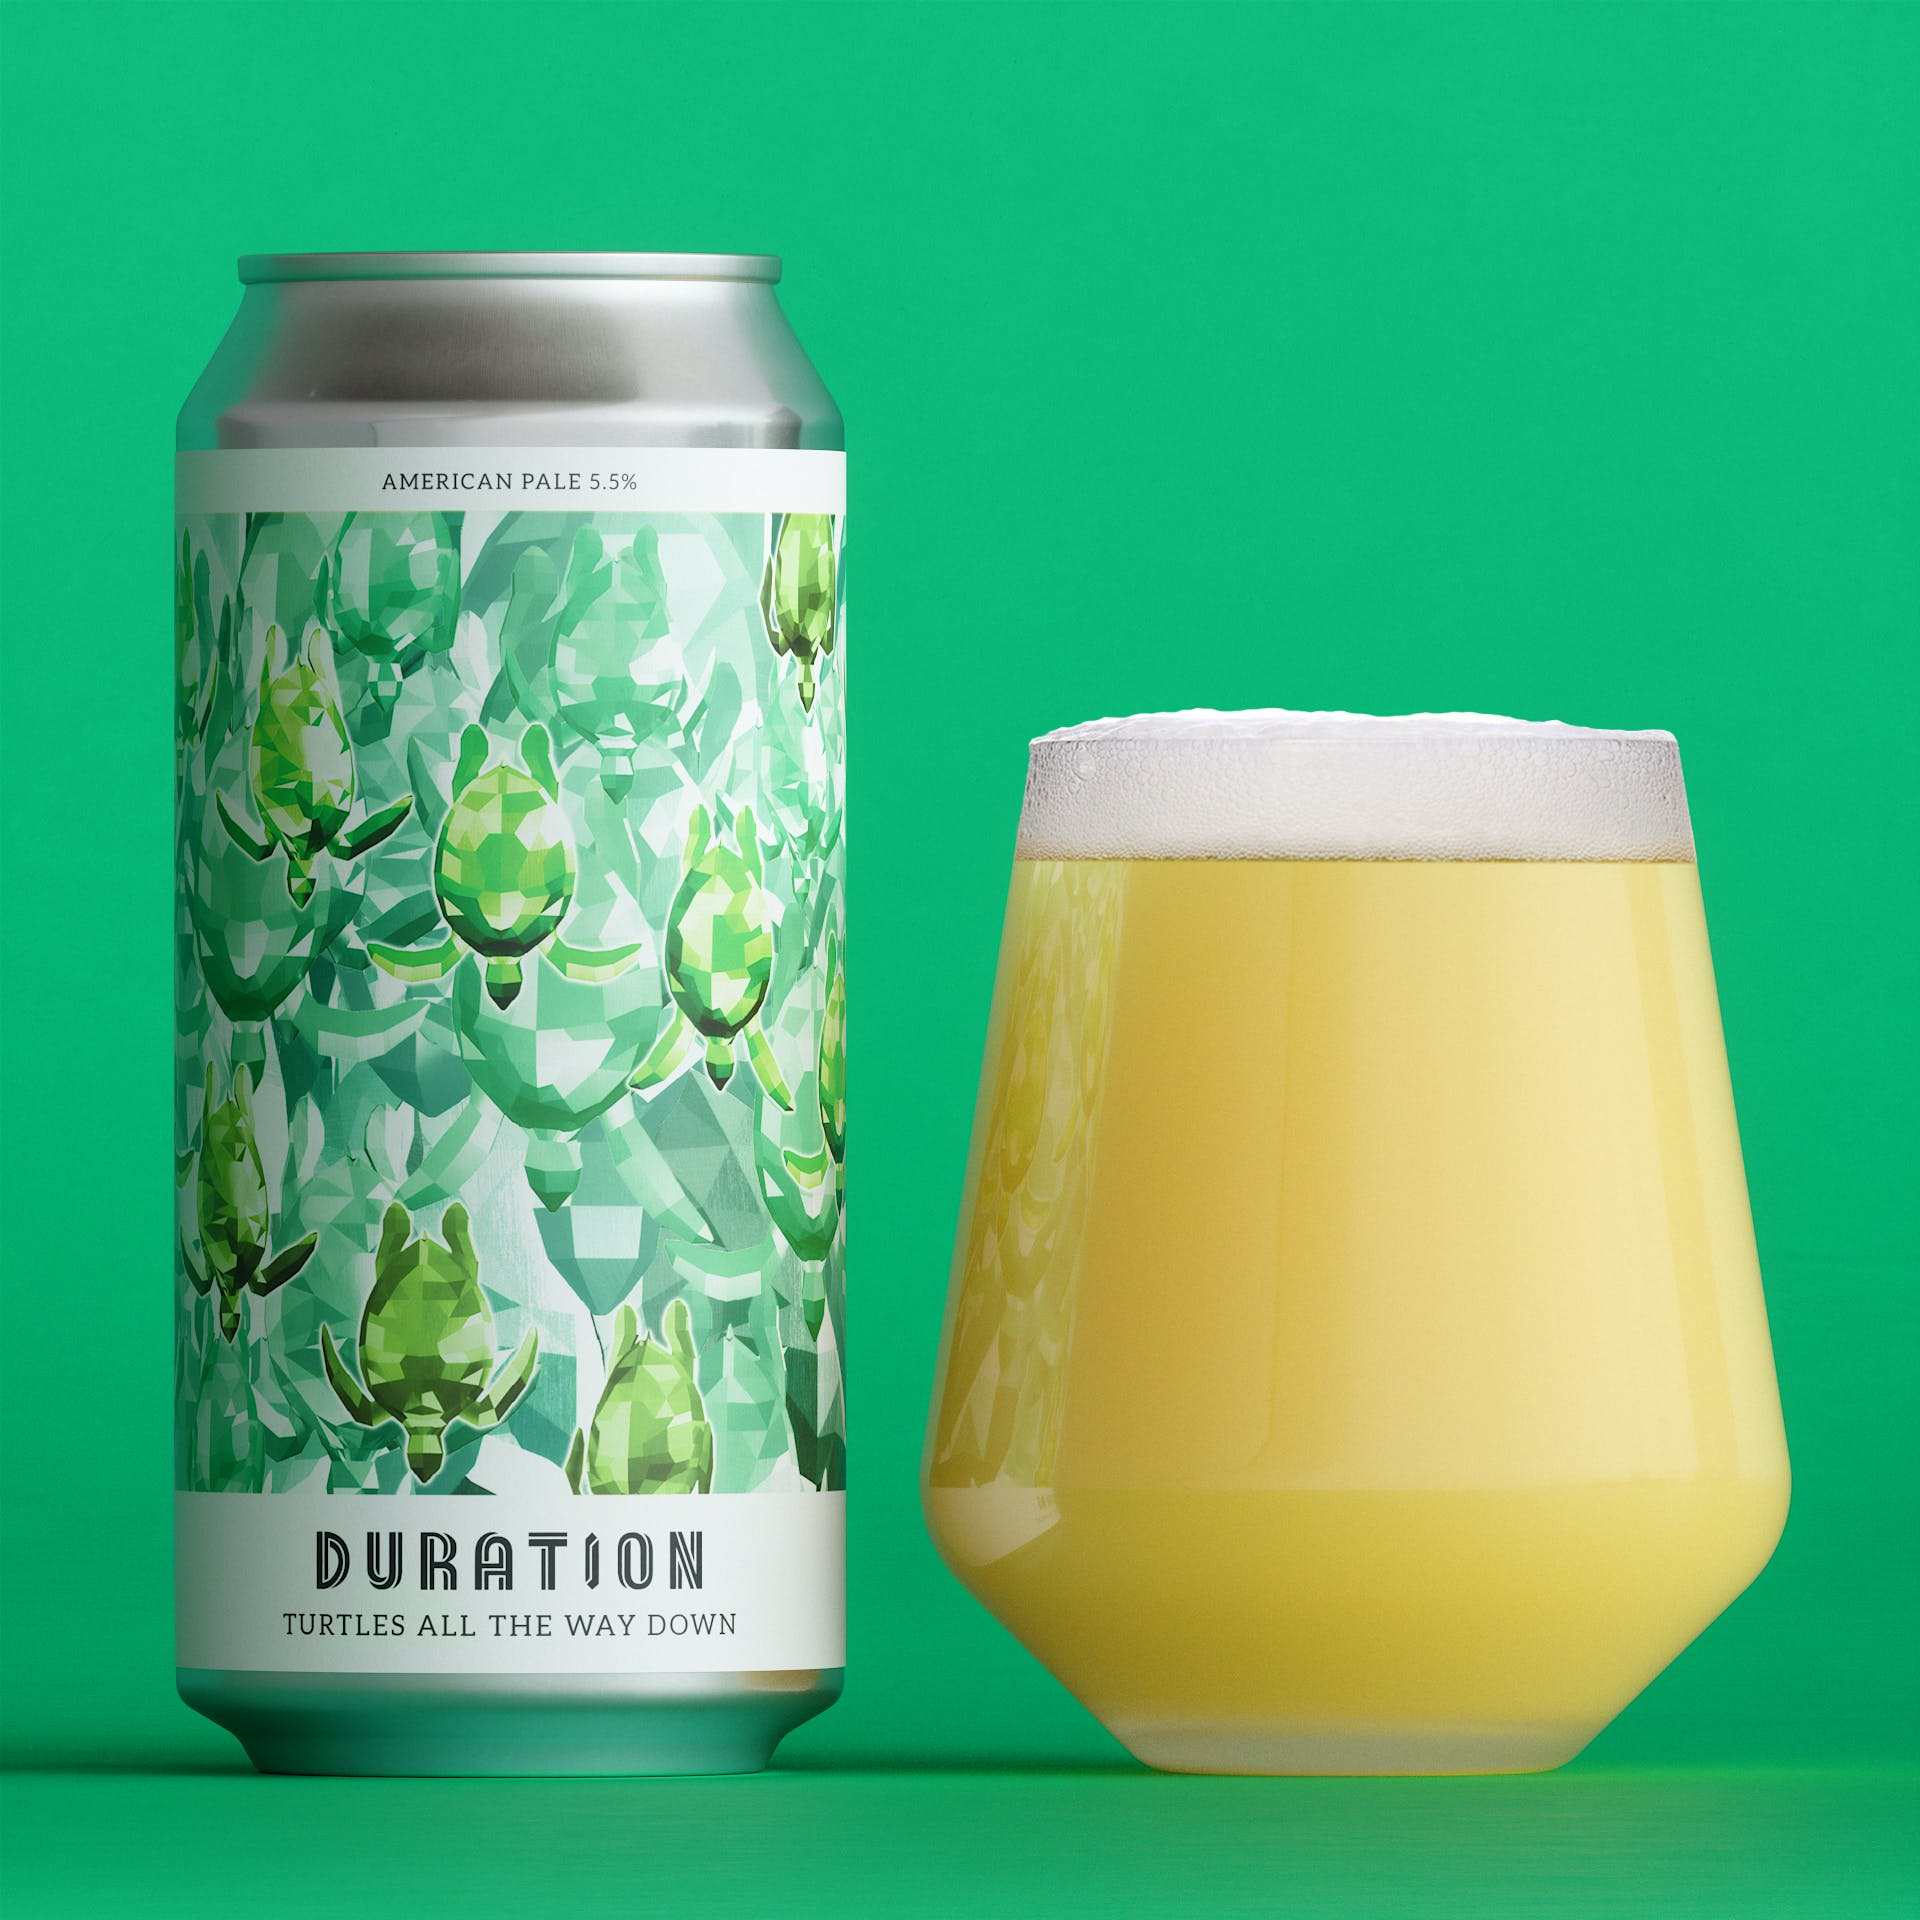 Turtles All The Way Down American Pale 5.5%  440ml Duration Brewing